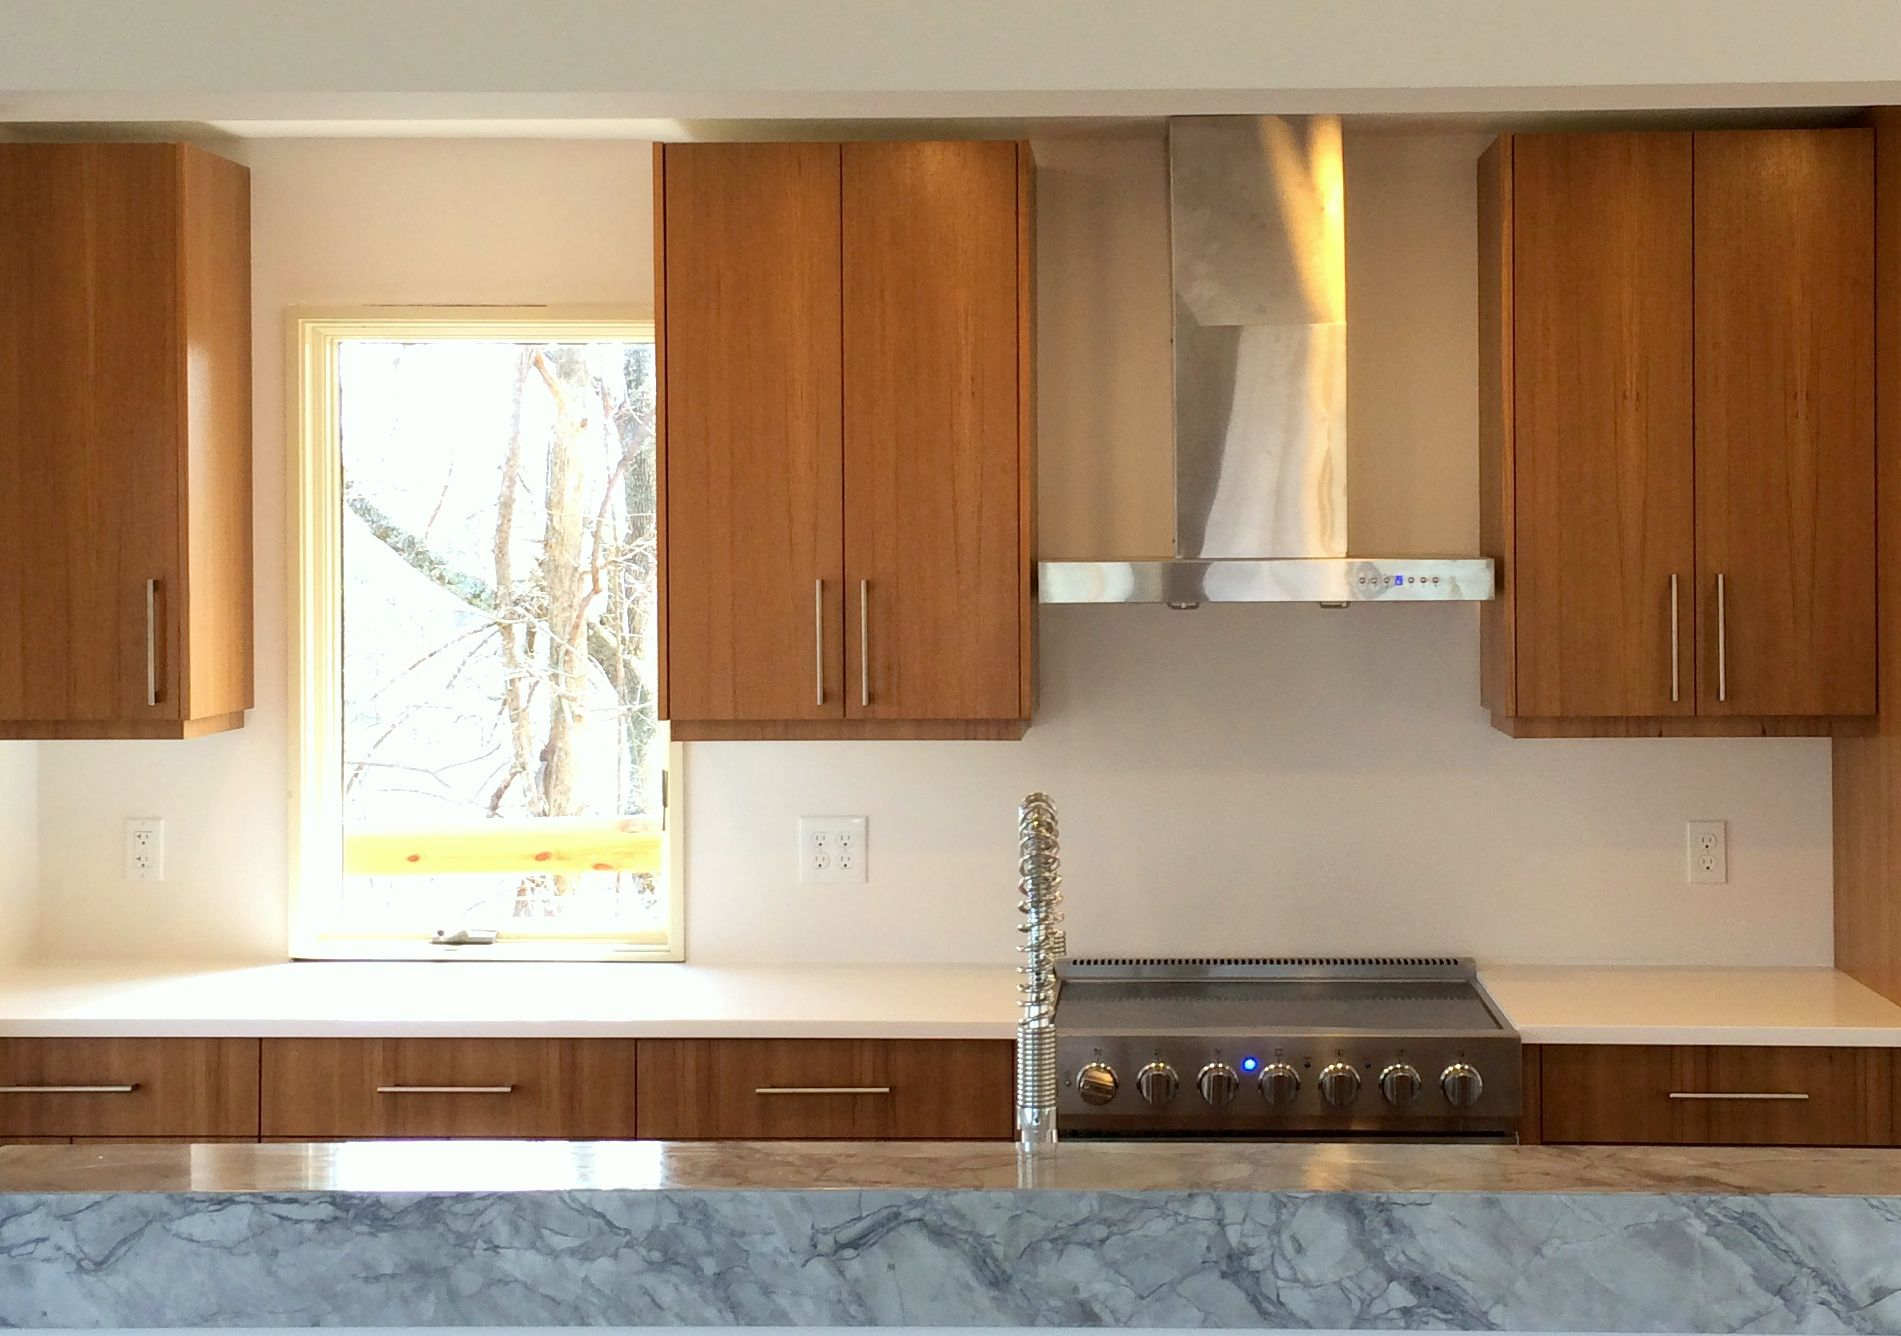 Teak Cabinets Kitchen Remodel Kitchen Remodel Pictures Kitchen Design Styles